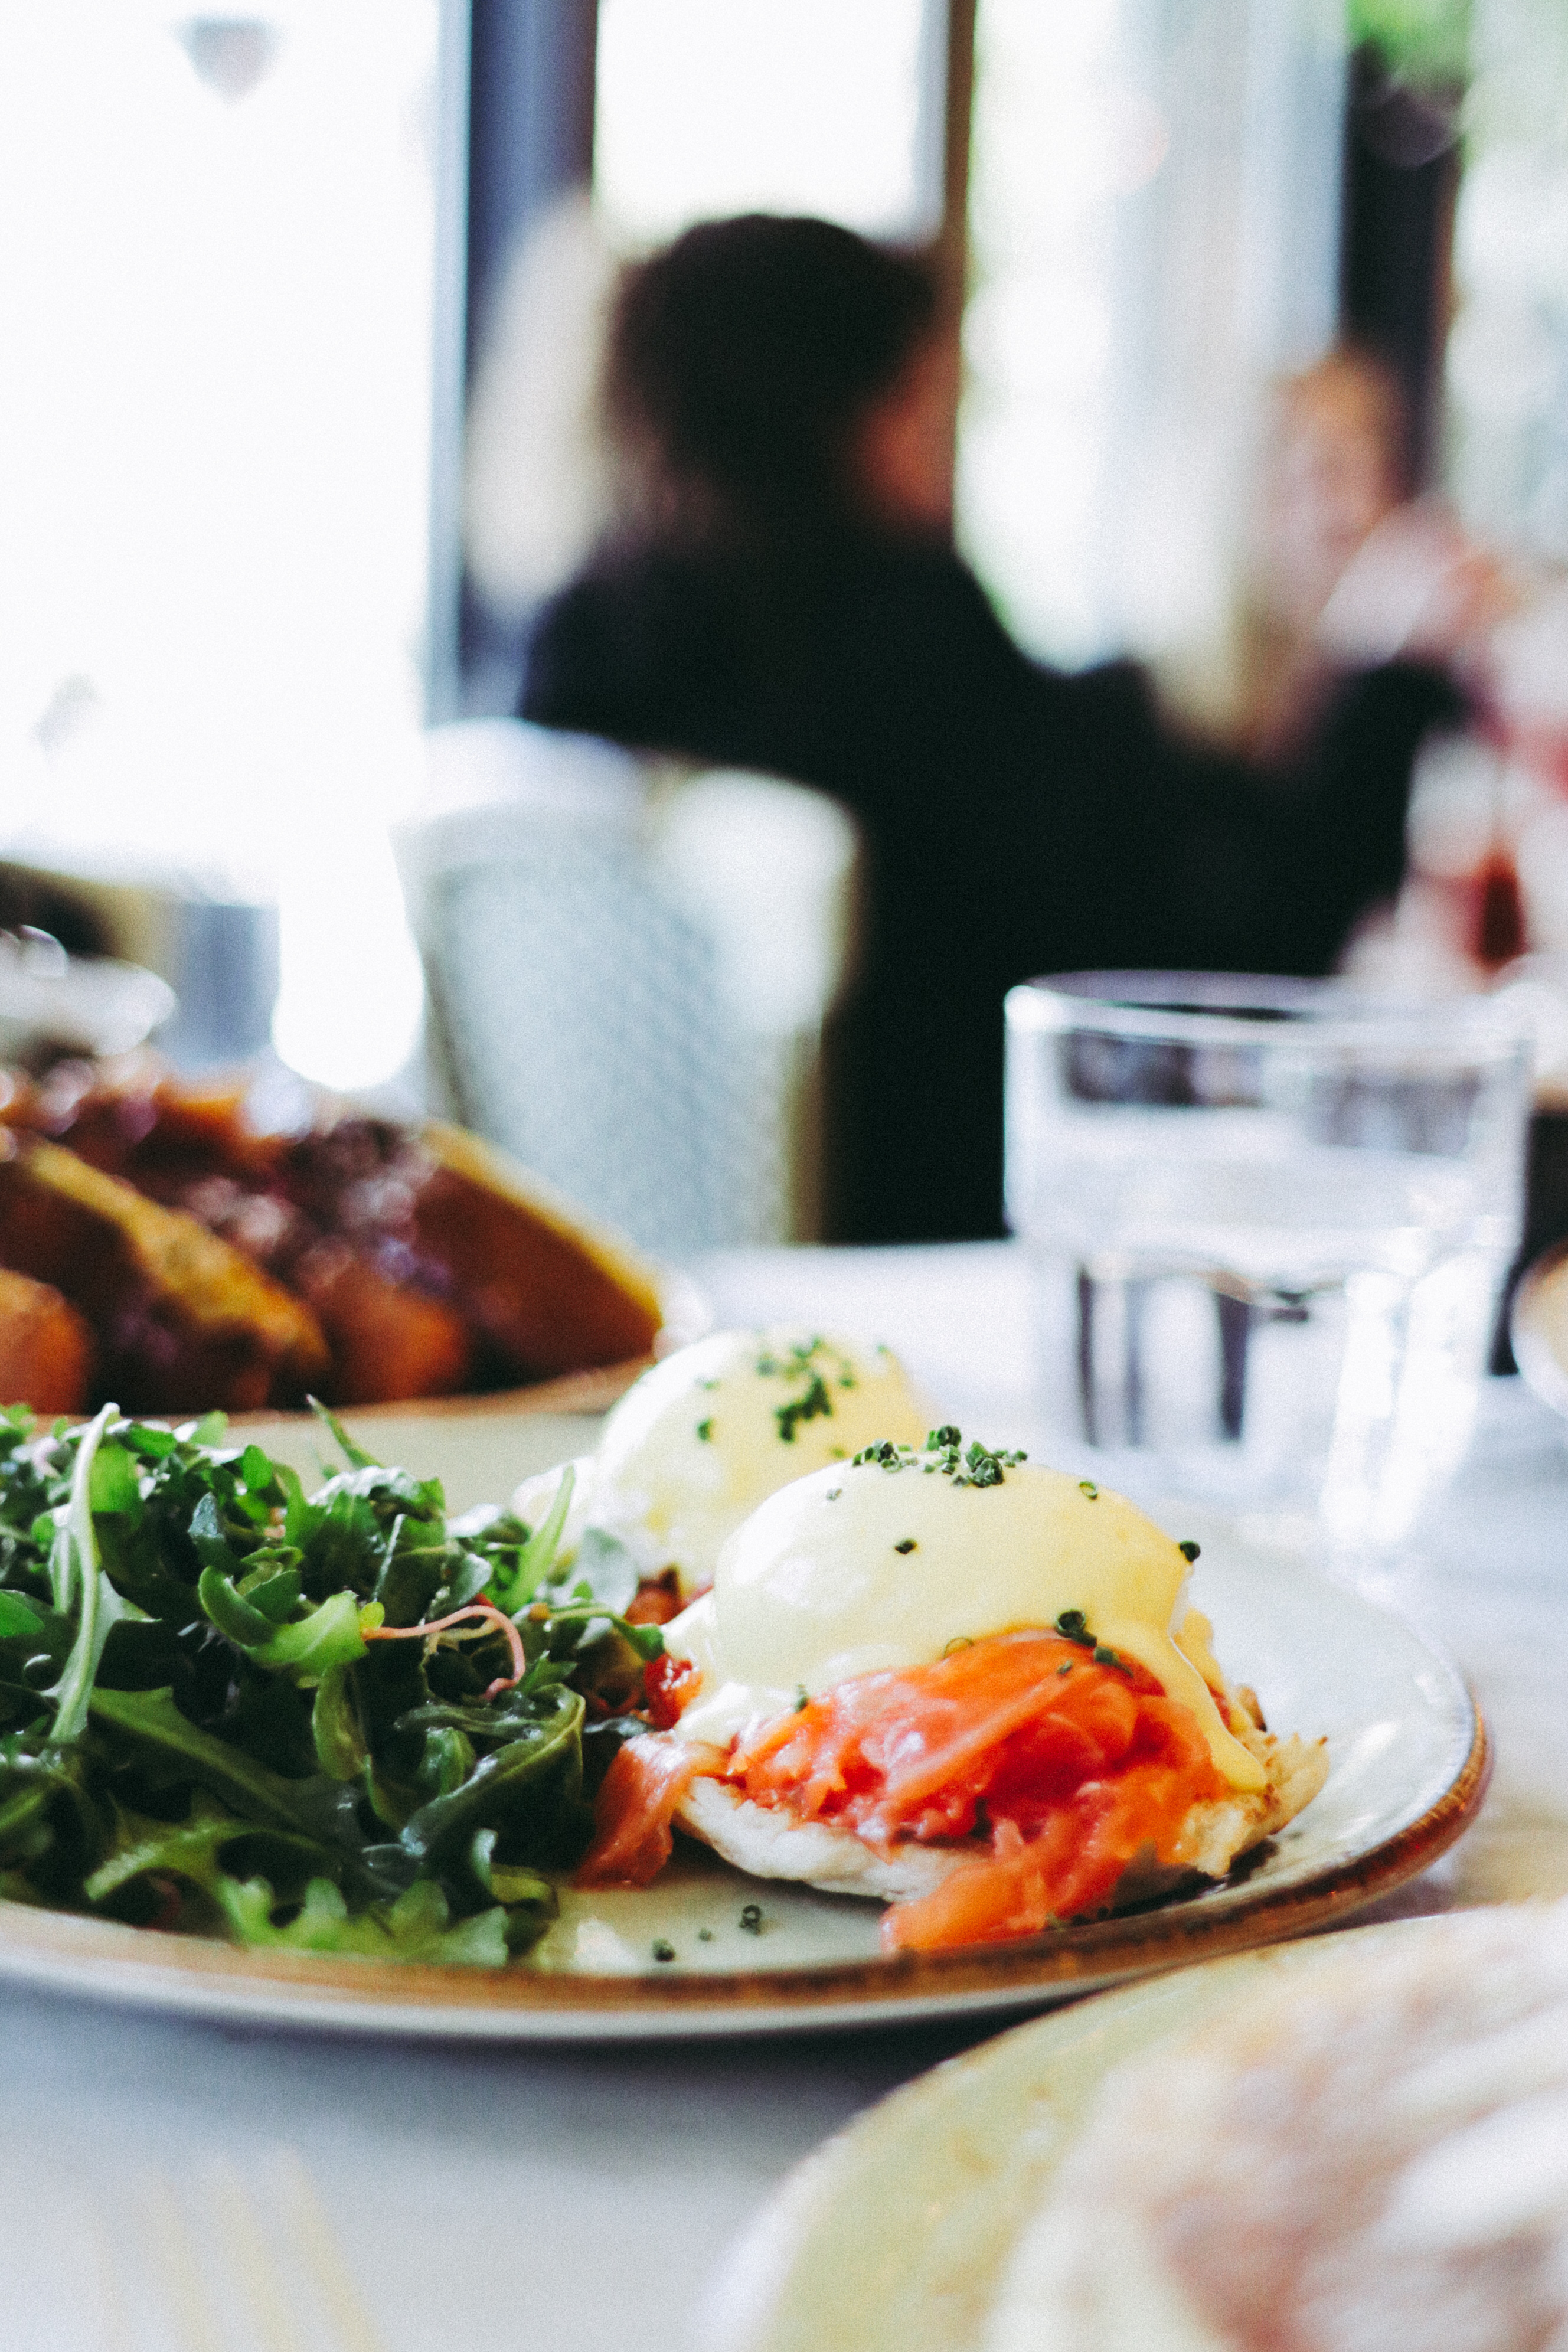 Smoked Salmon Eggs Benedict at FIG Restaurant Brunch